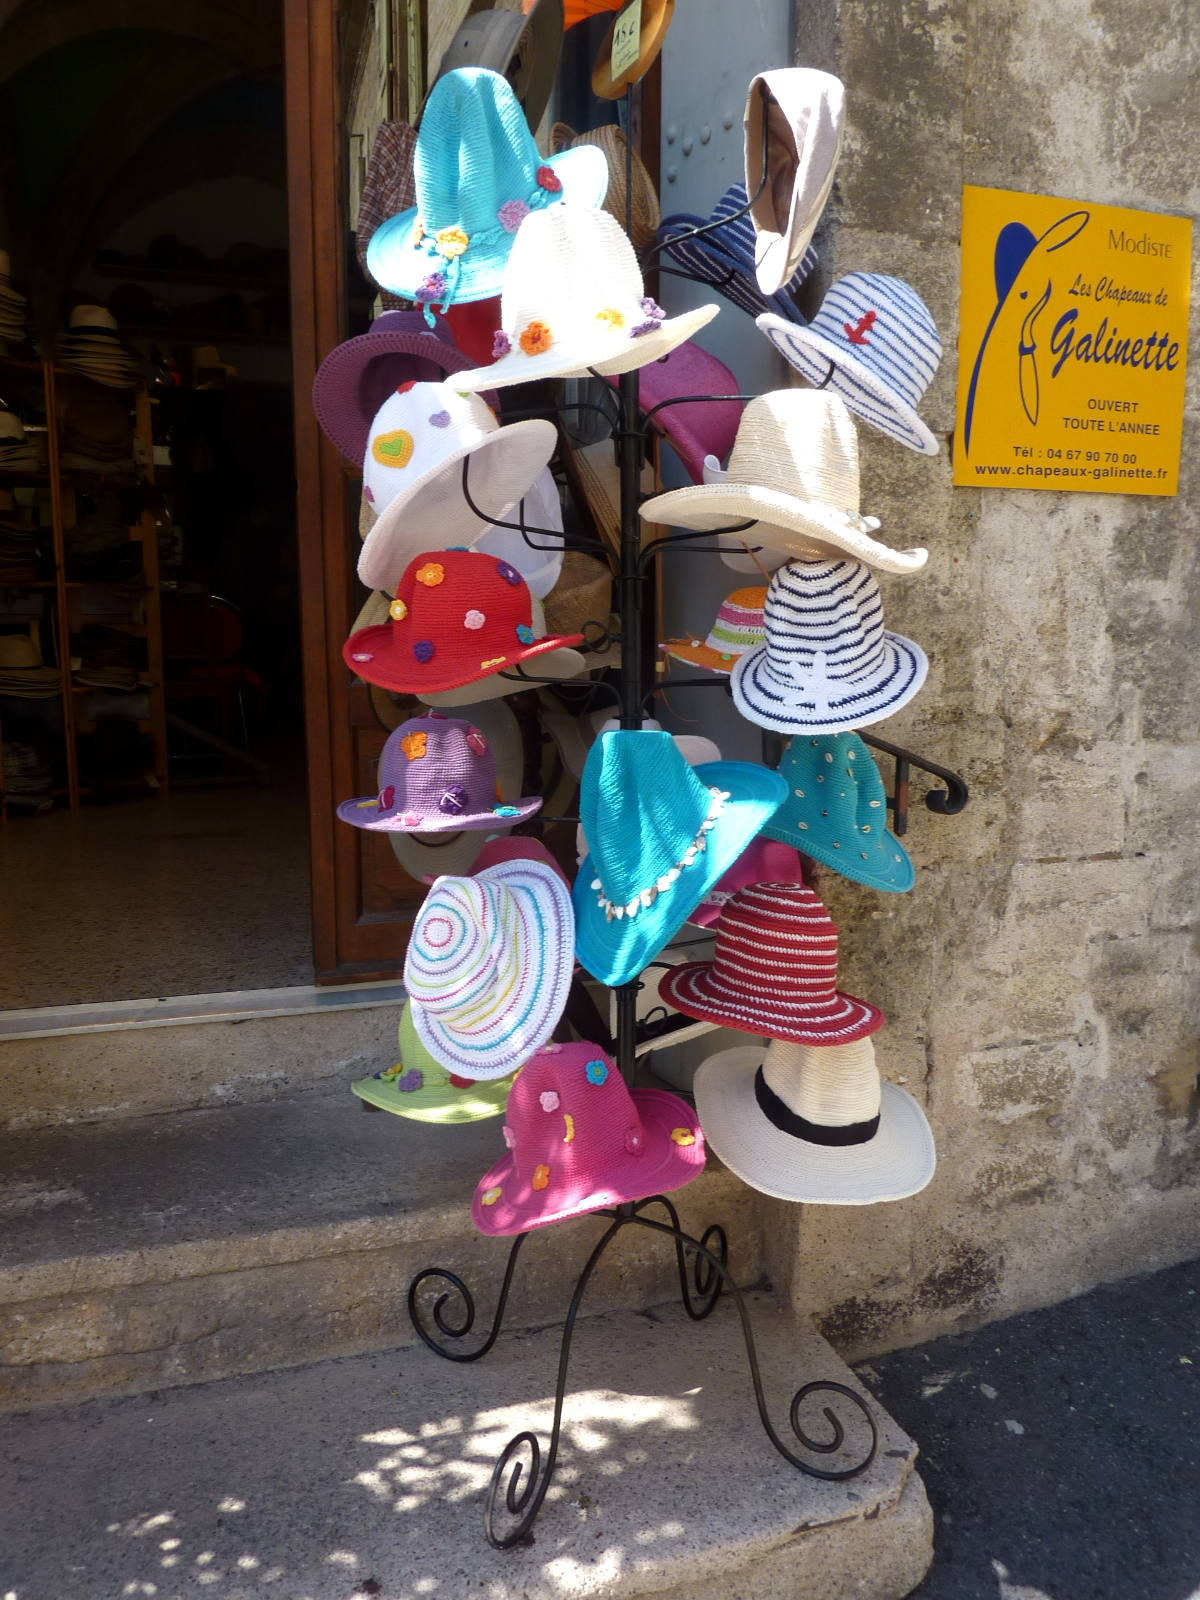 Galinette Makes hates in Pezenas